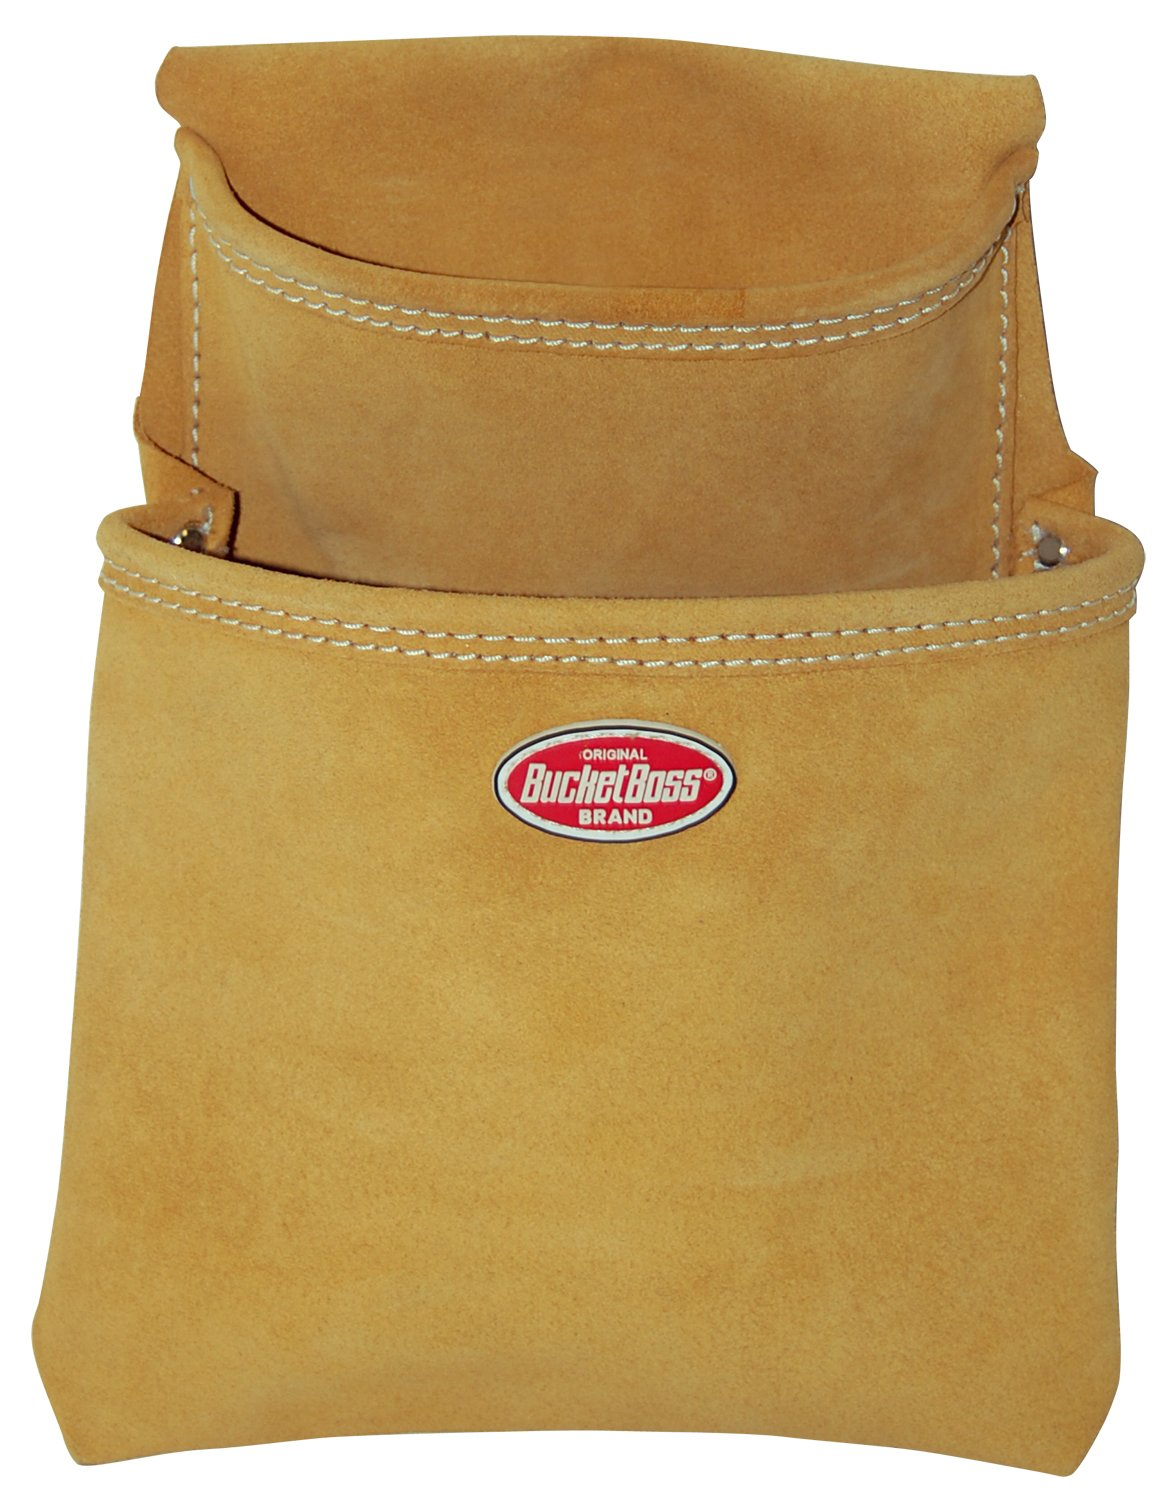 Bucket Boss 54483SP Suede Leather 2-Pocket Dry Wall Bag